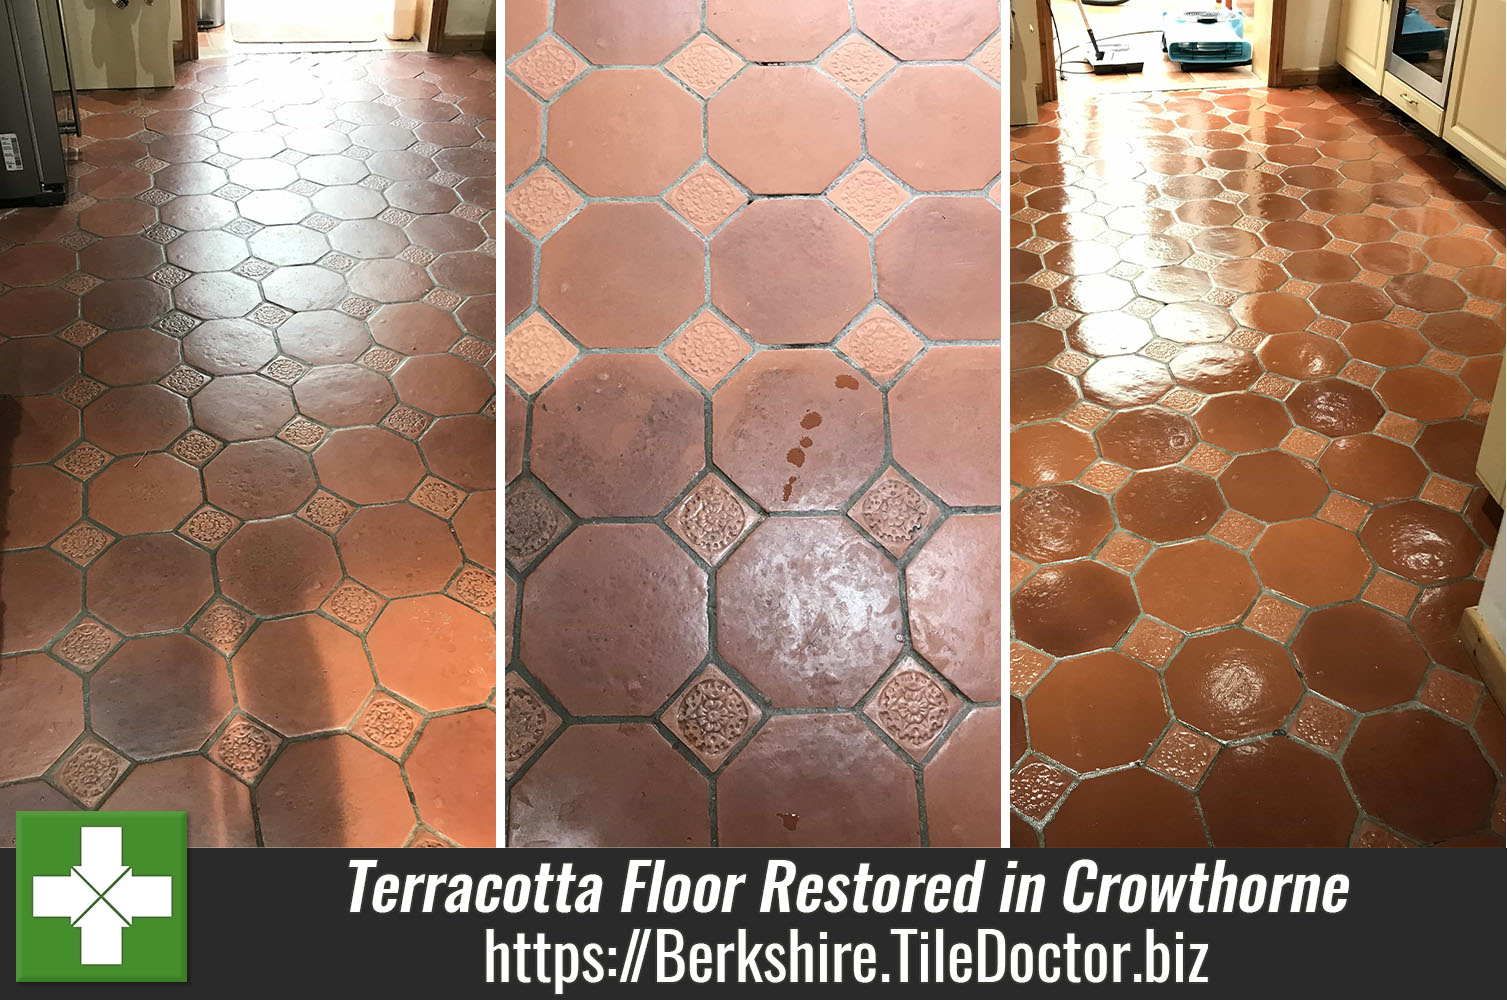 Twenty Year Old Terracotta Floor Renovated in Crowthorne